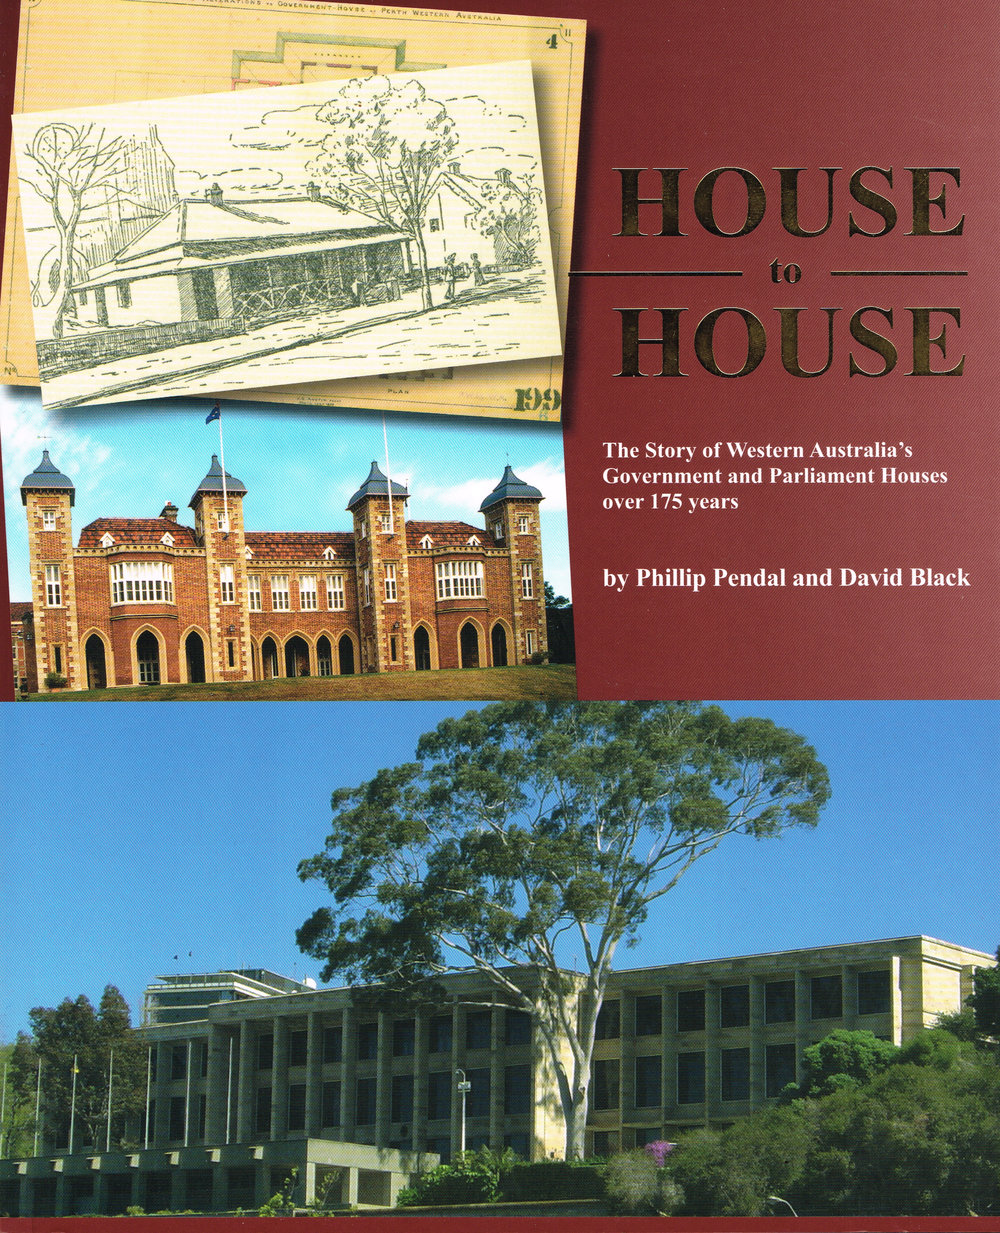 House to House : The Story of Western Australia's Government and Parliament Houses over 175 years by Phillip Pendal and David Black